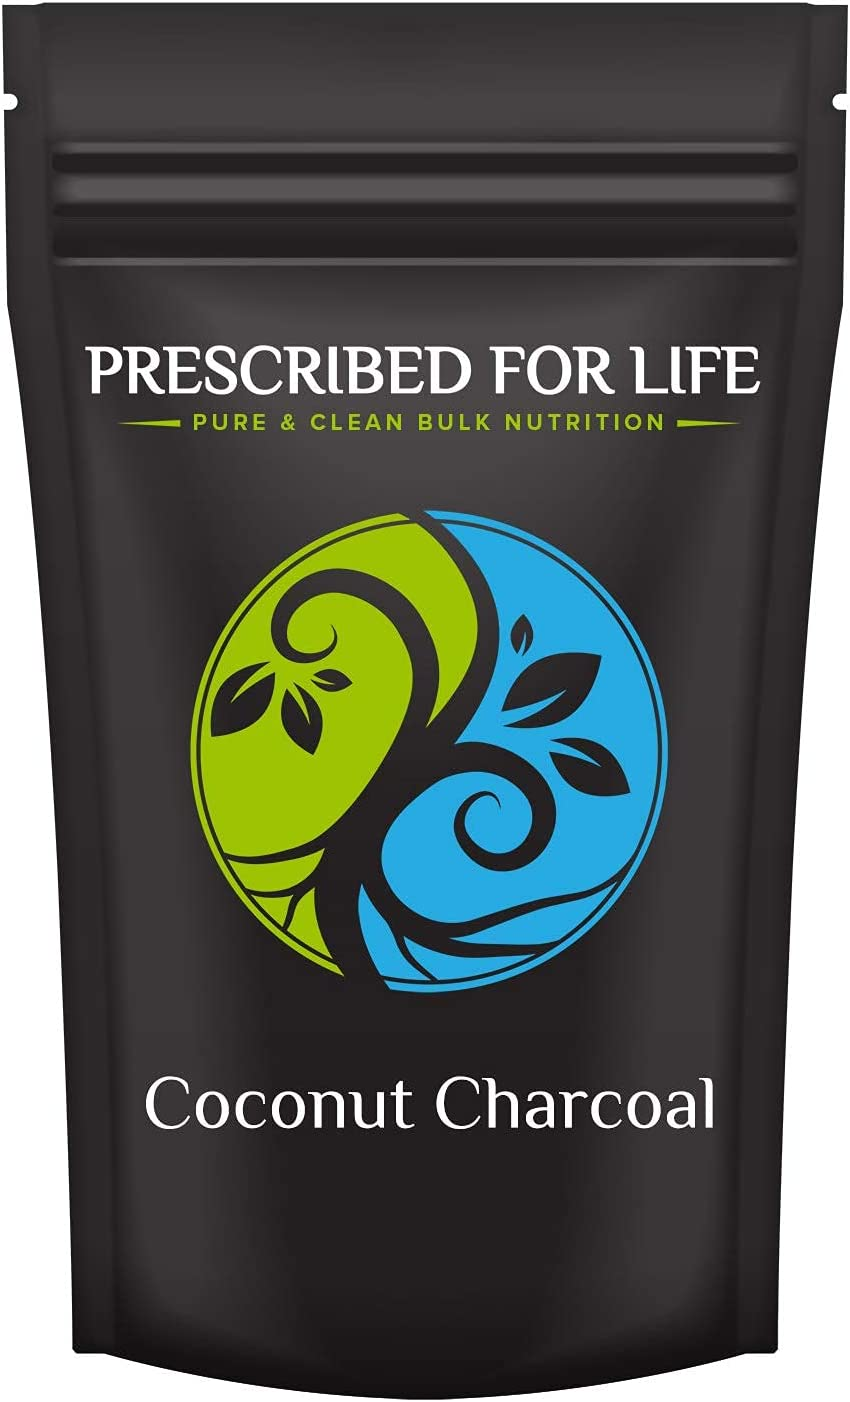 Max 42% OFF Prescribed for Life Coconut Charcoal Activated C - Shell Inventory cleanup selling sale